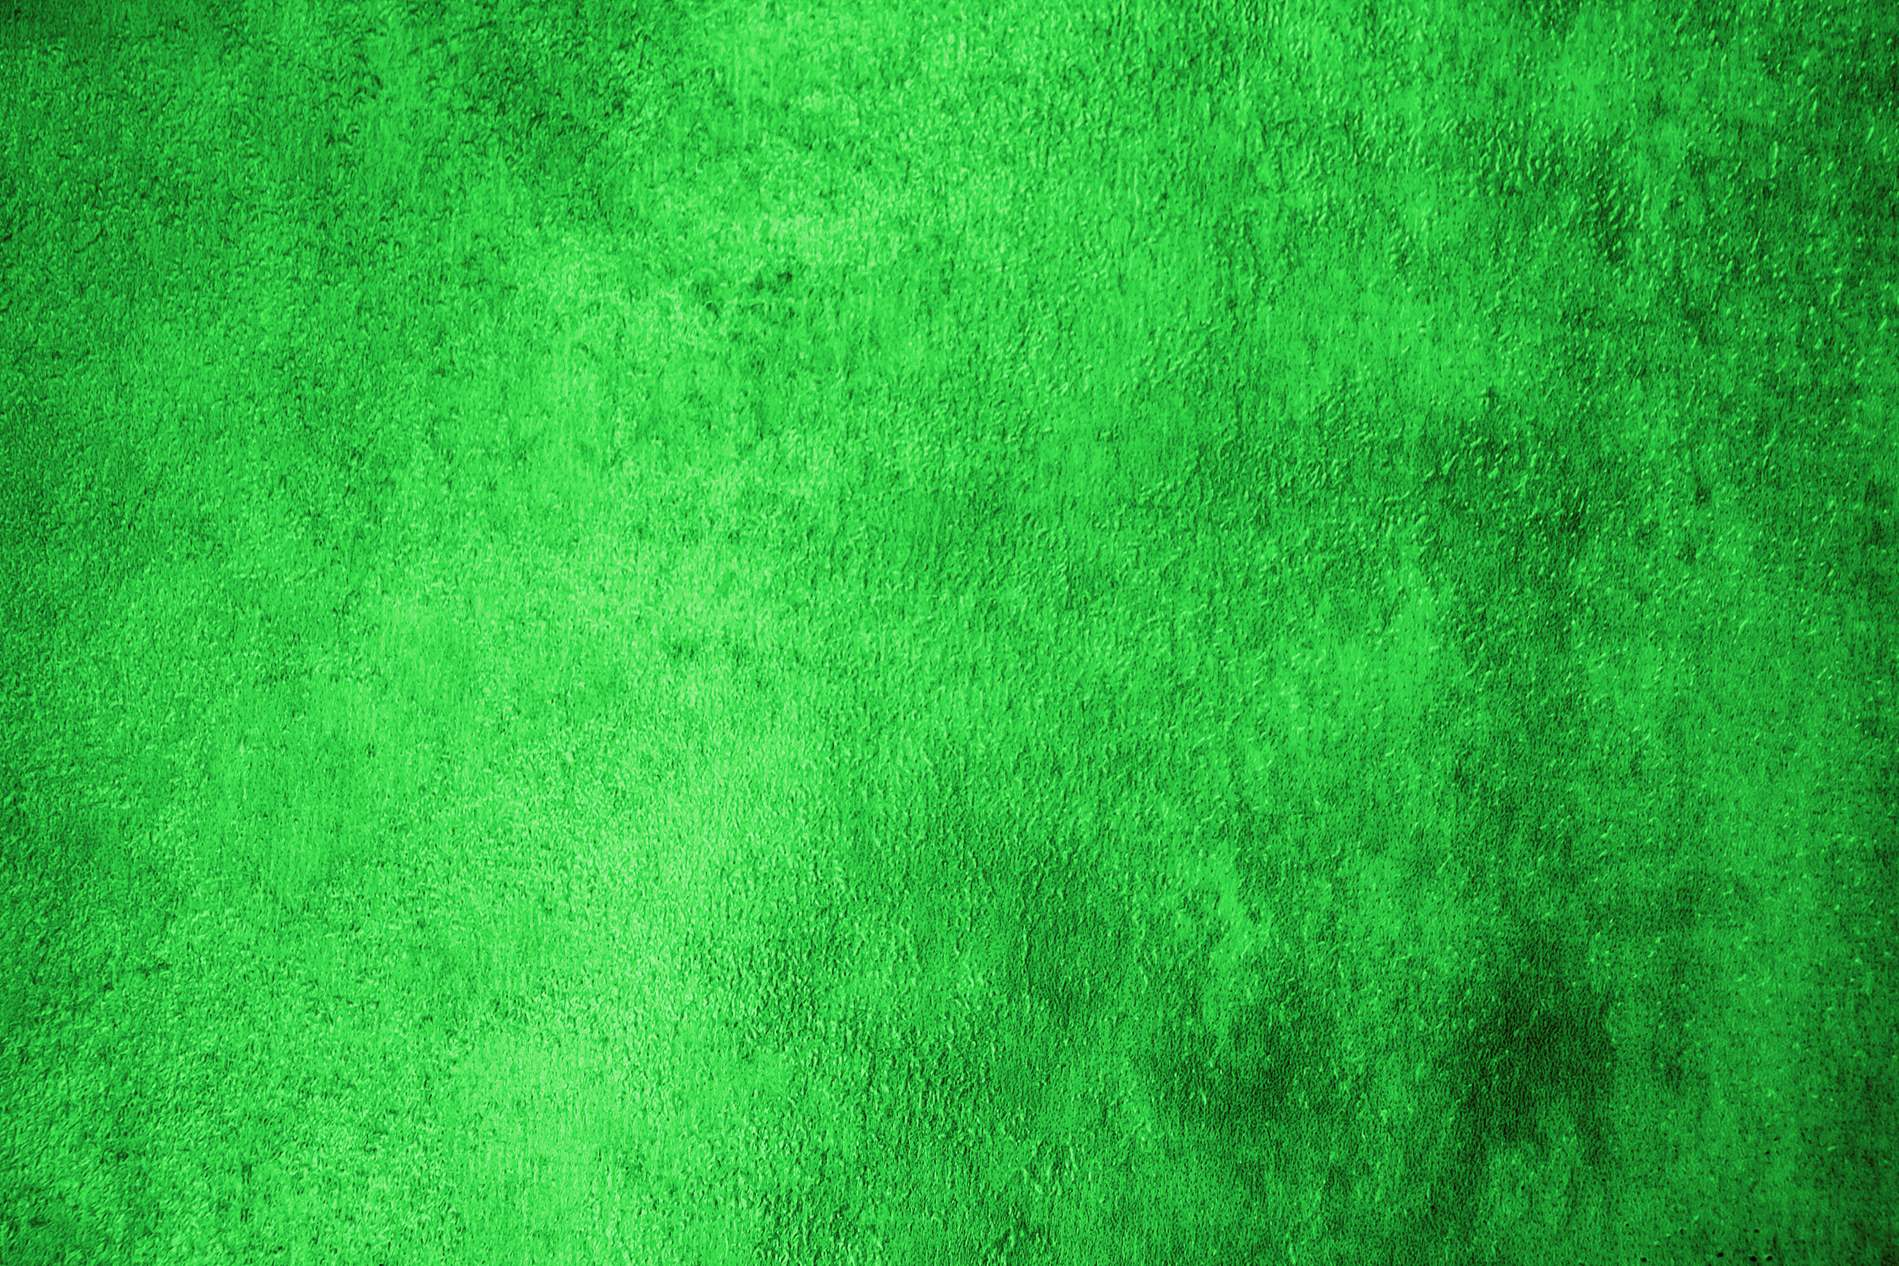 green texture wallpaper from - photo #40